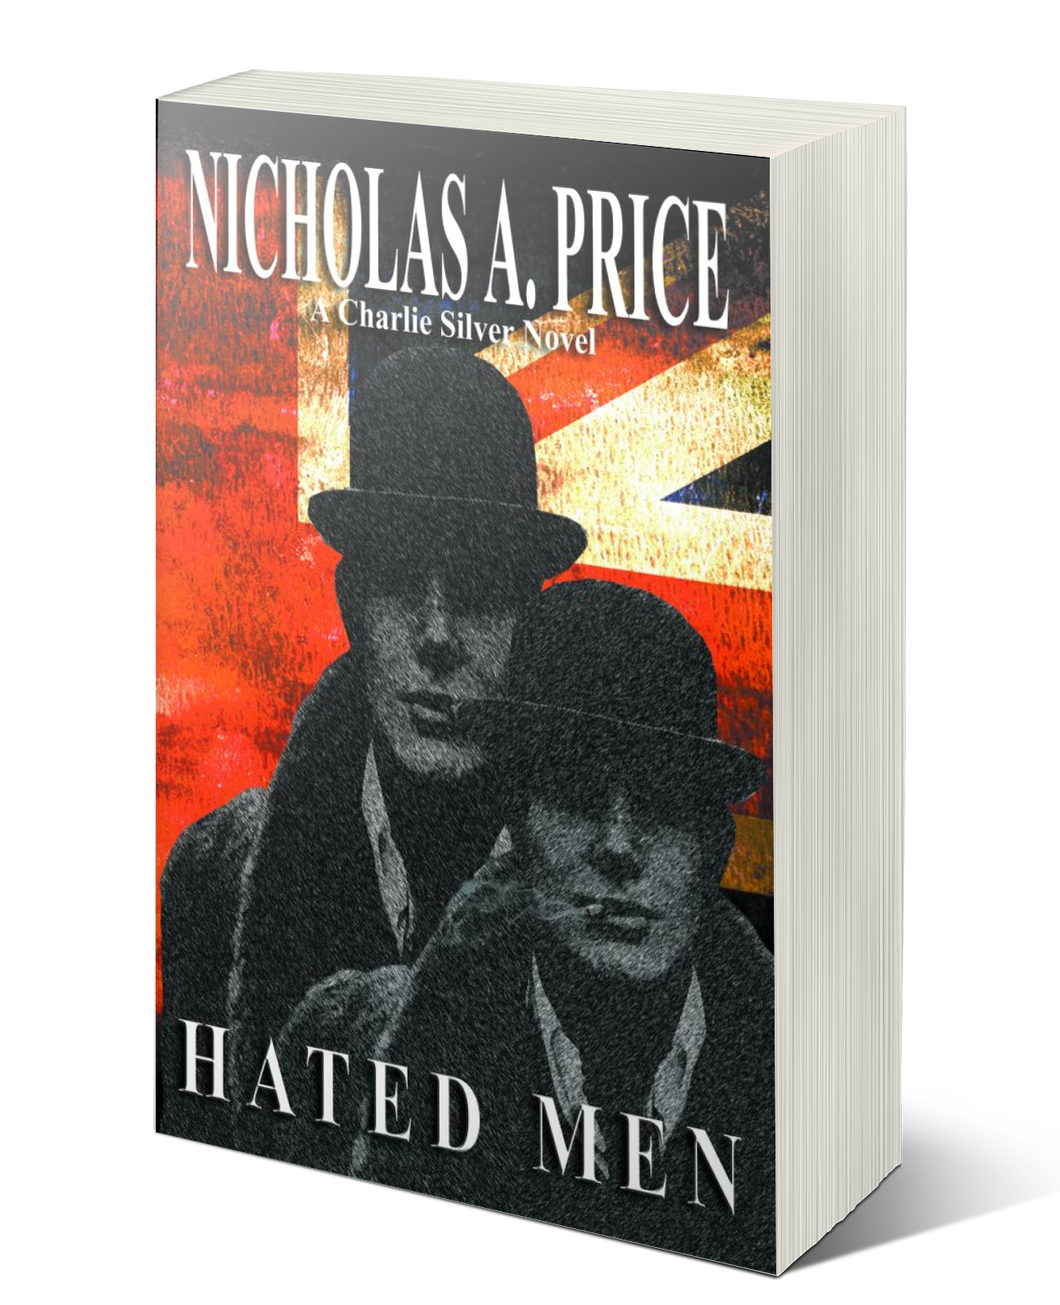 Crime Fiction Book Hated Men: A Charlie Silver Novel by Nicholas A. Price